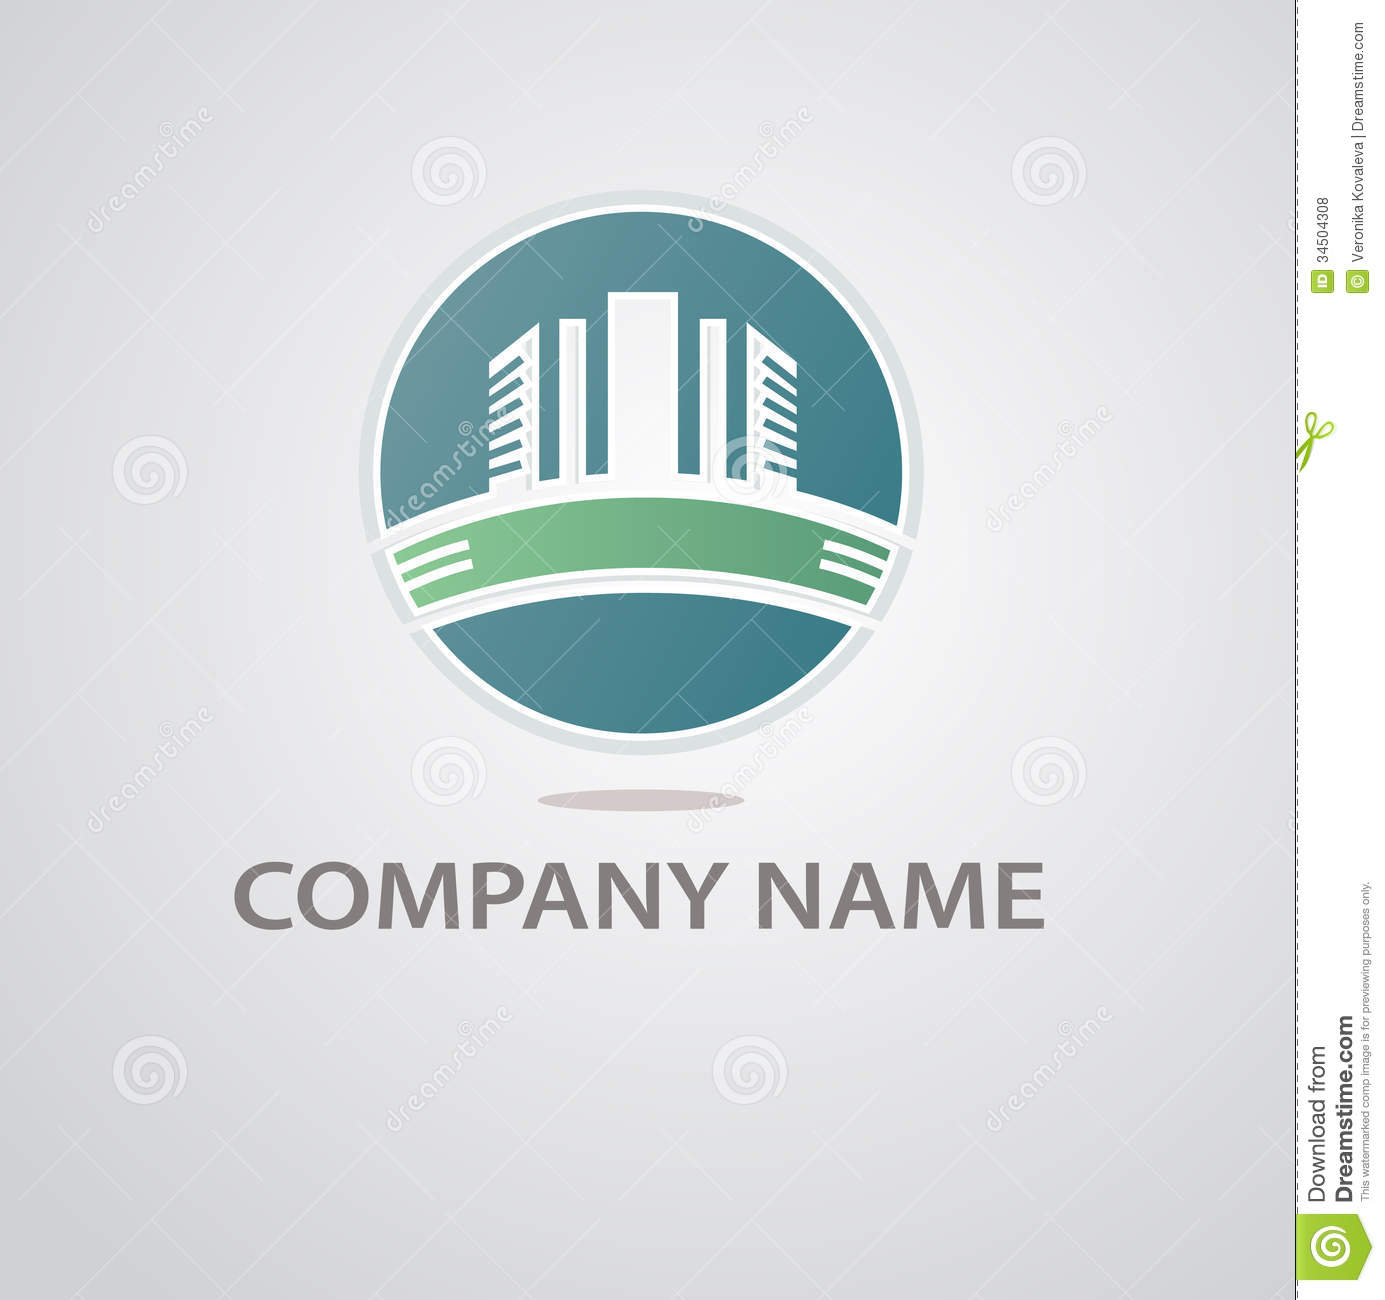 Abstract architecture building silhouette logo royalty for Architecture design company